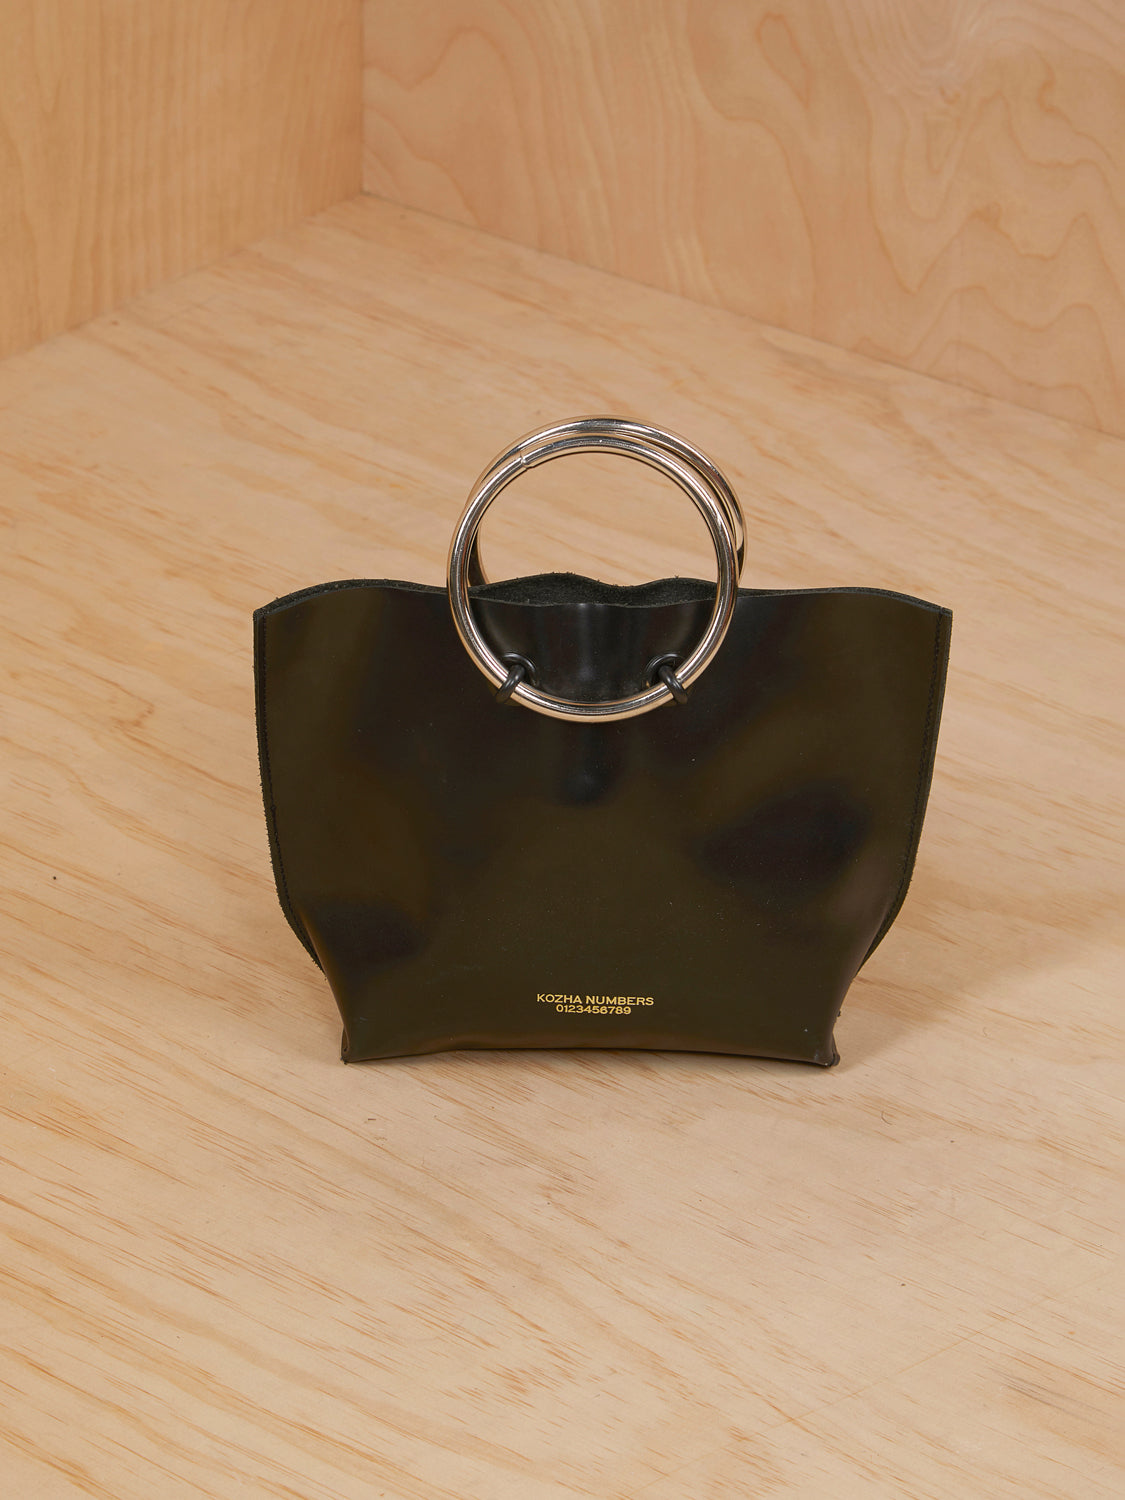 Kozha Numbers Black Leather Purse with Silver Ring Handle